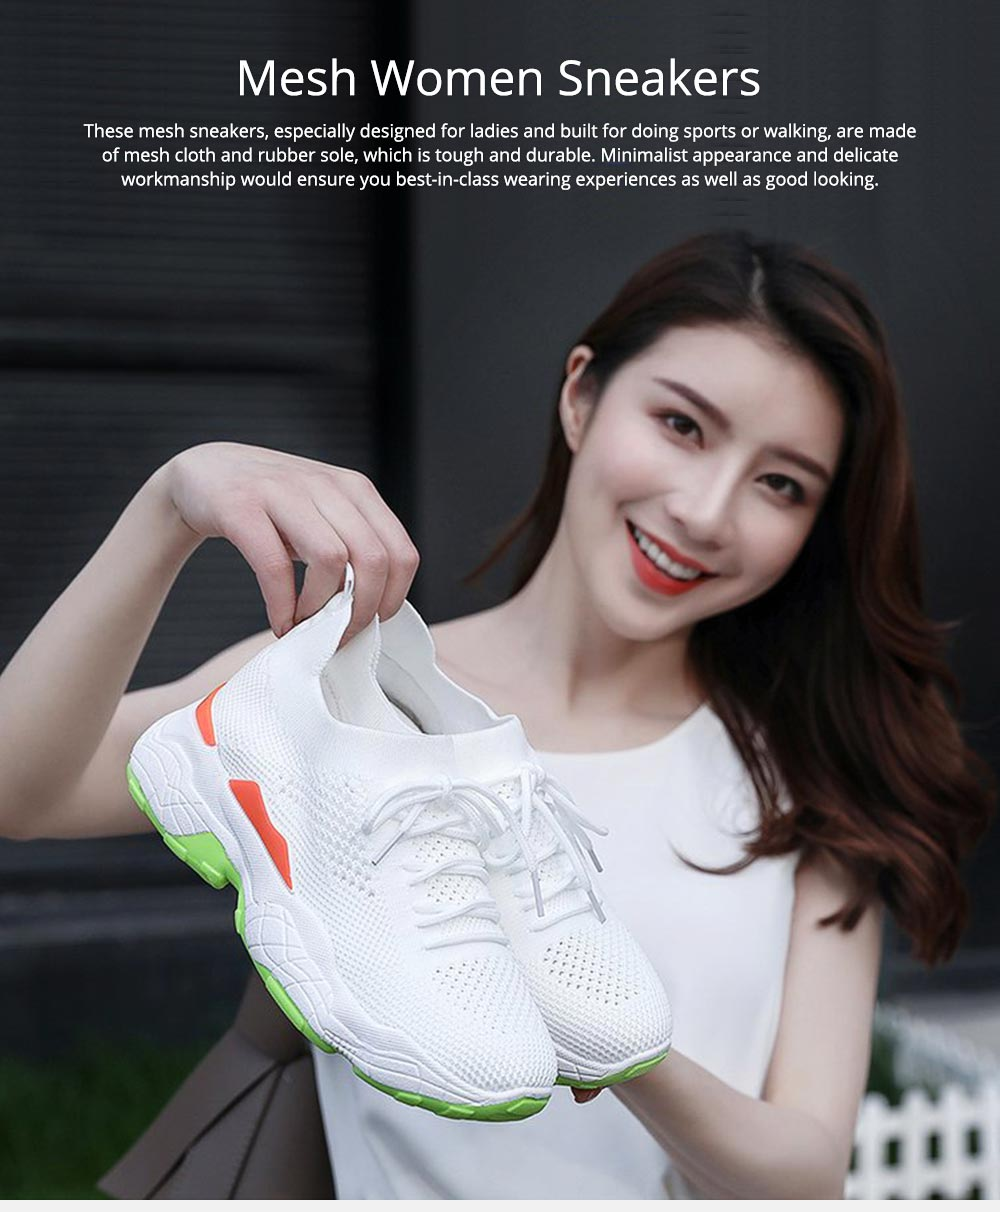 Minimalist Casual Breathable Mesh Women Sneakers, Comfortable Sports Running Gym Outdoors Shoes for Ladies 0